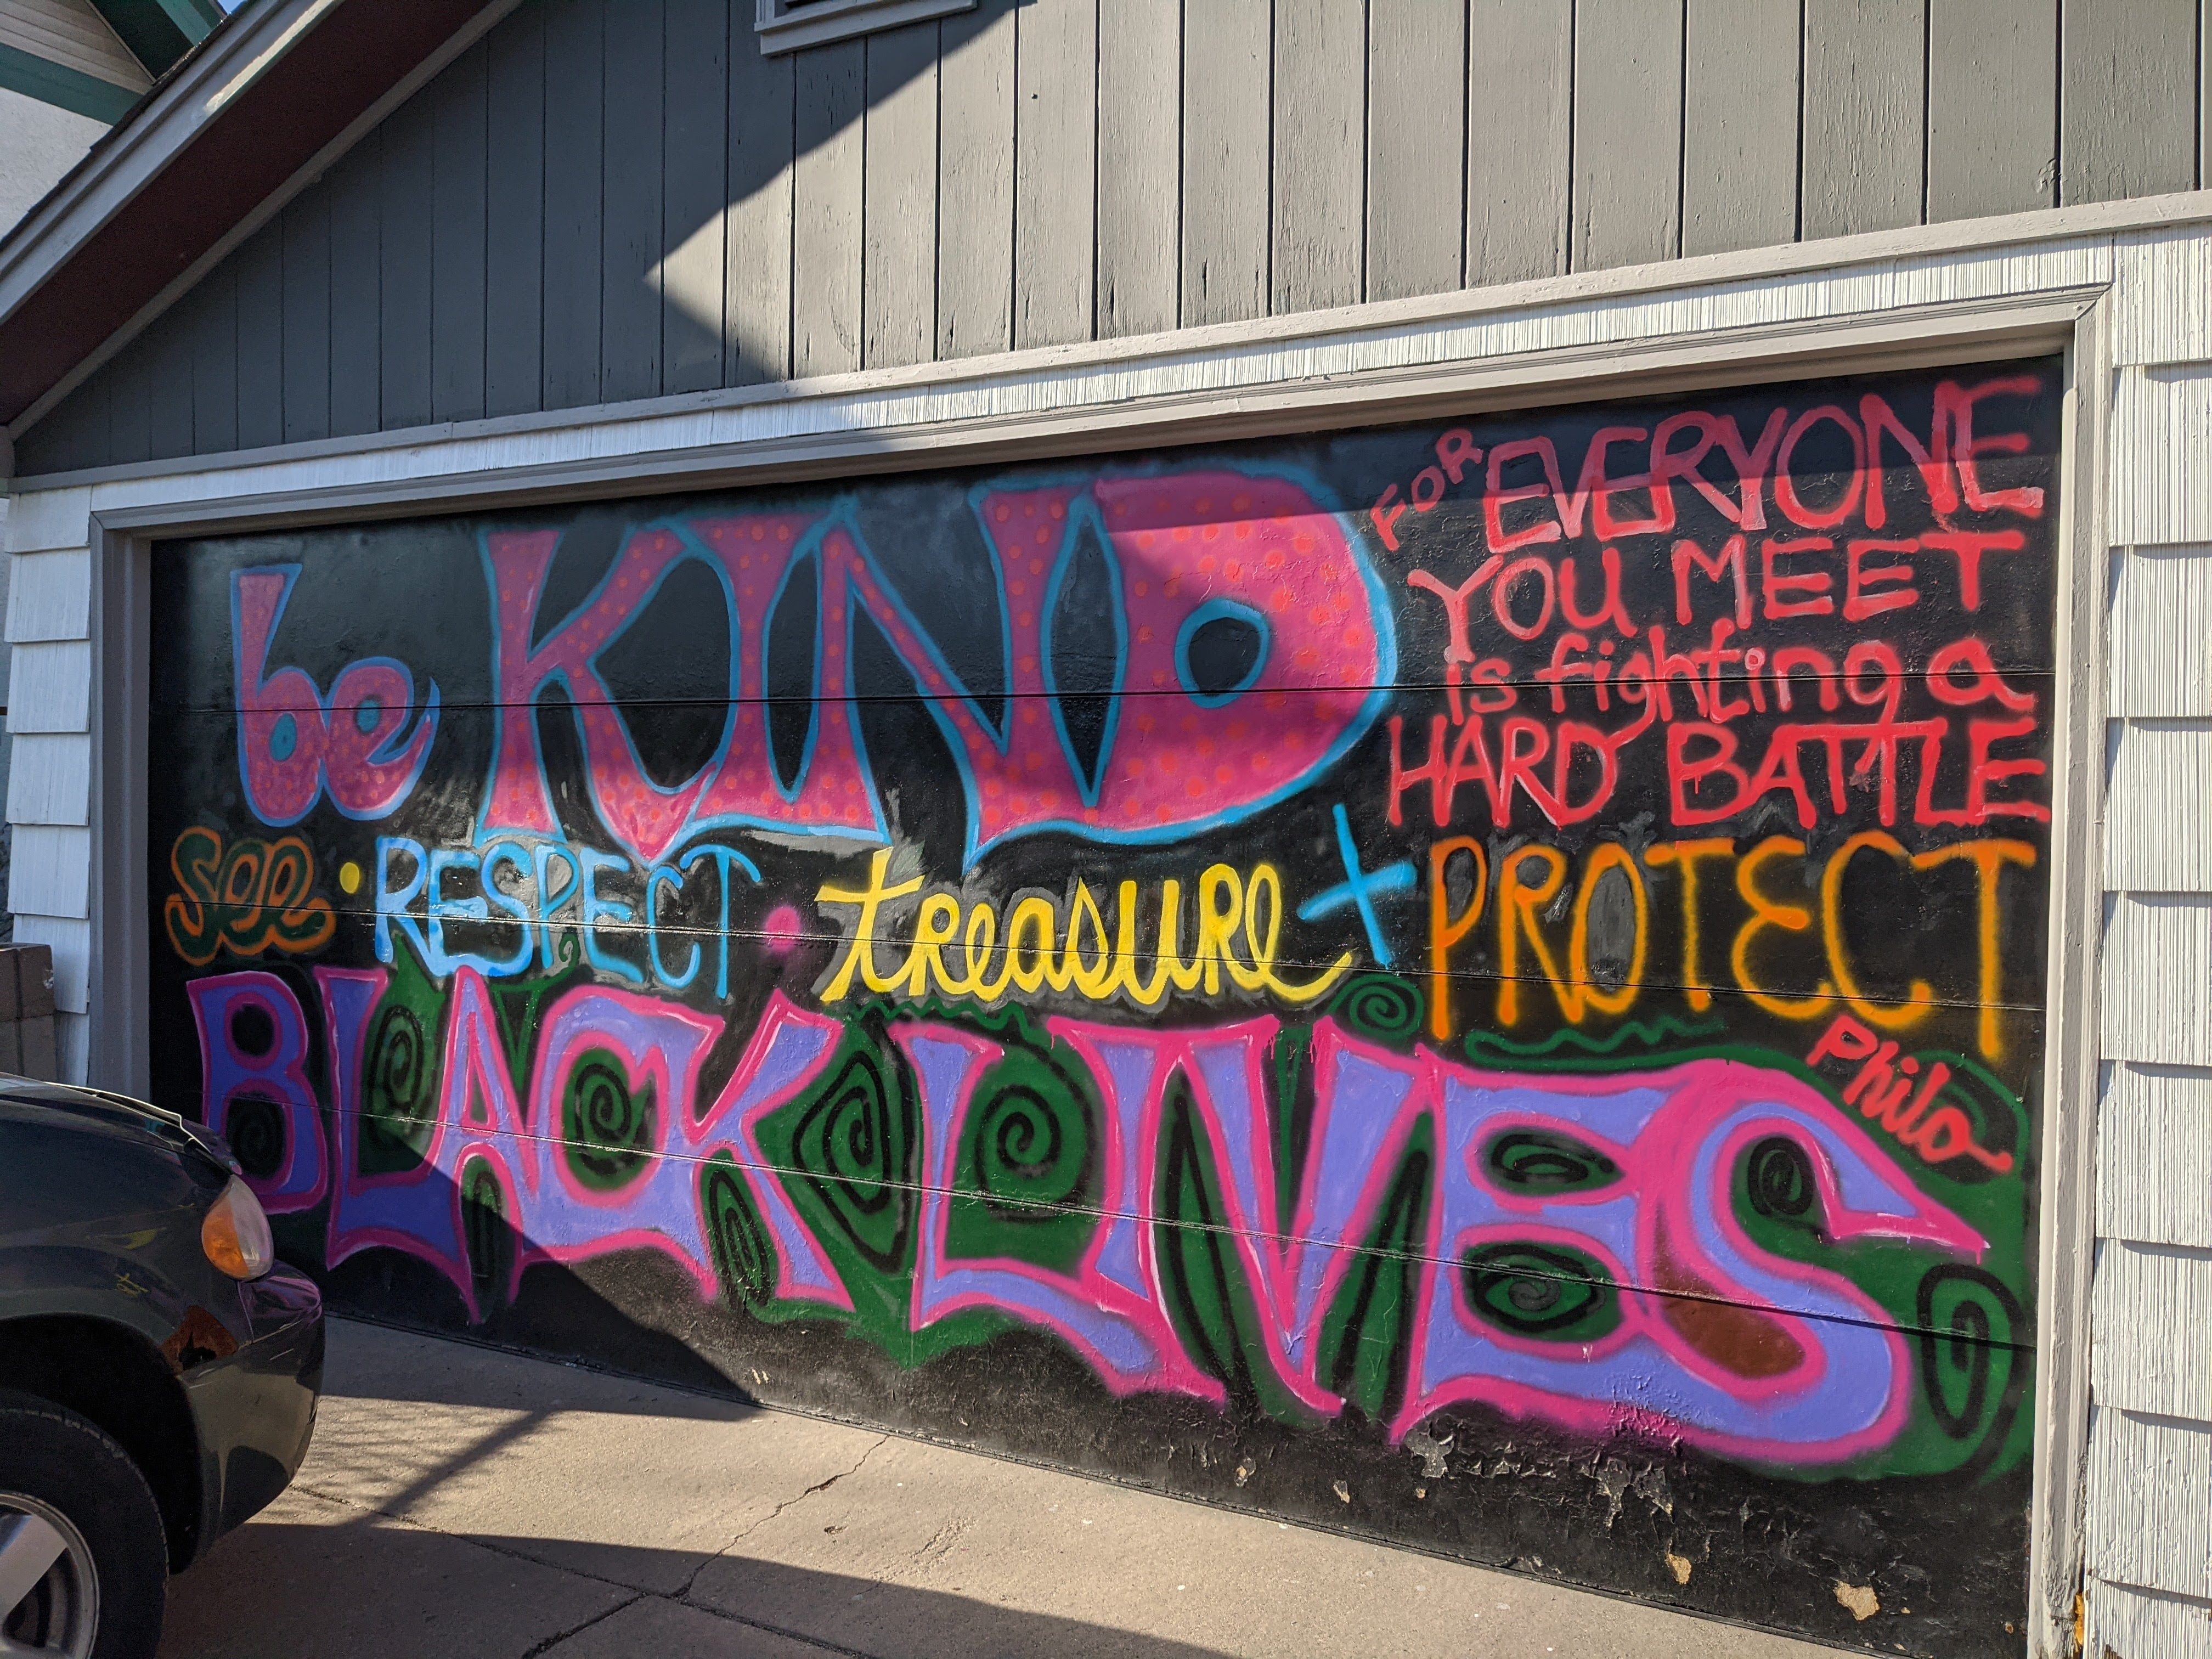 """Private residence parking garage door with stylized text reading """"Be kind for everyone you meet is fighting a hard battle. See, respect, treasure and protect Black lives."""" Philo is written on the slant of the 's' in 'lives'."""